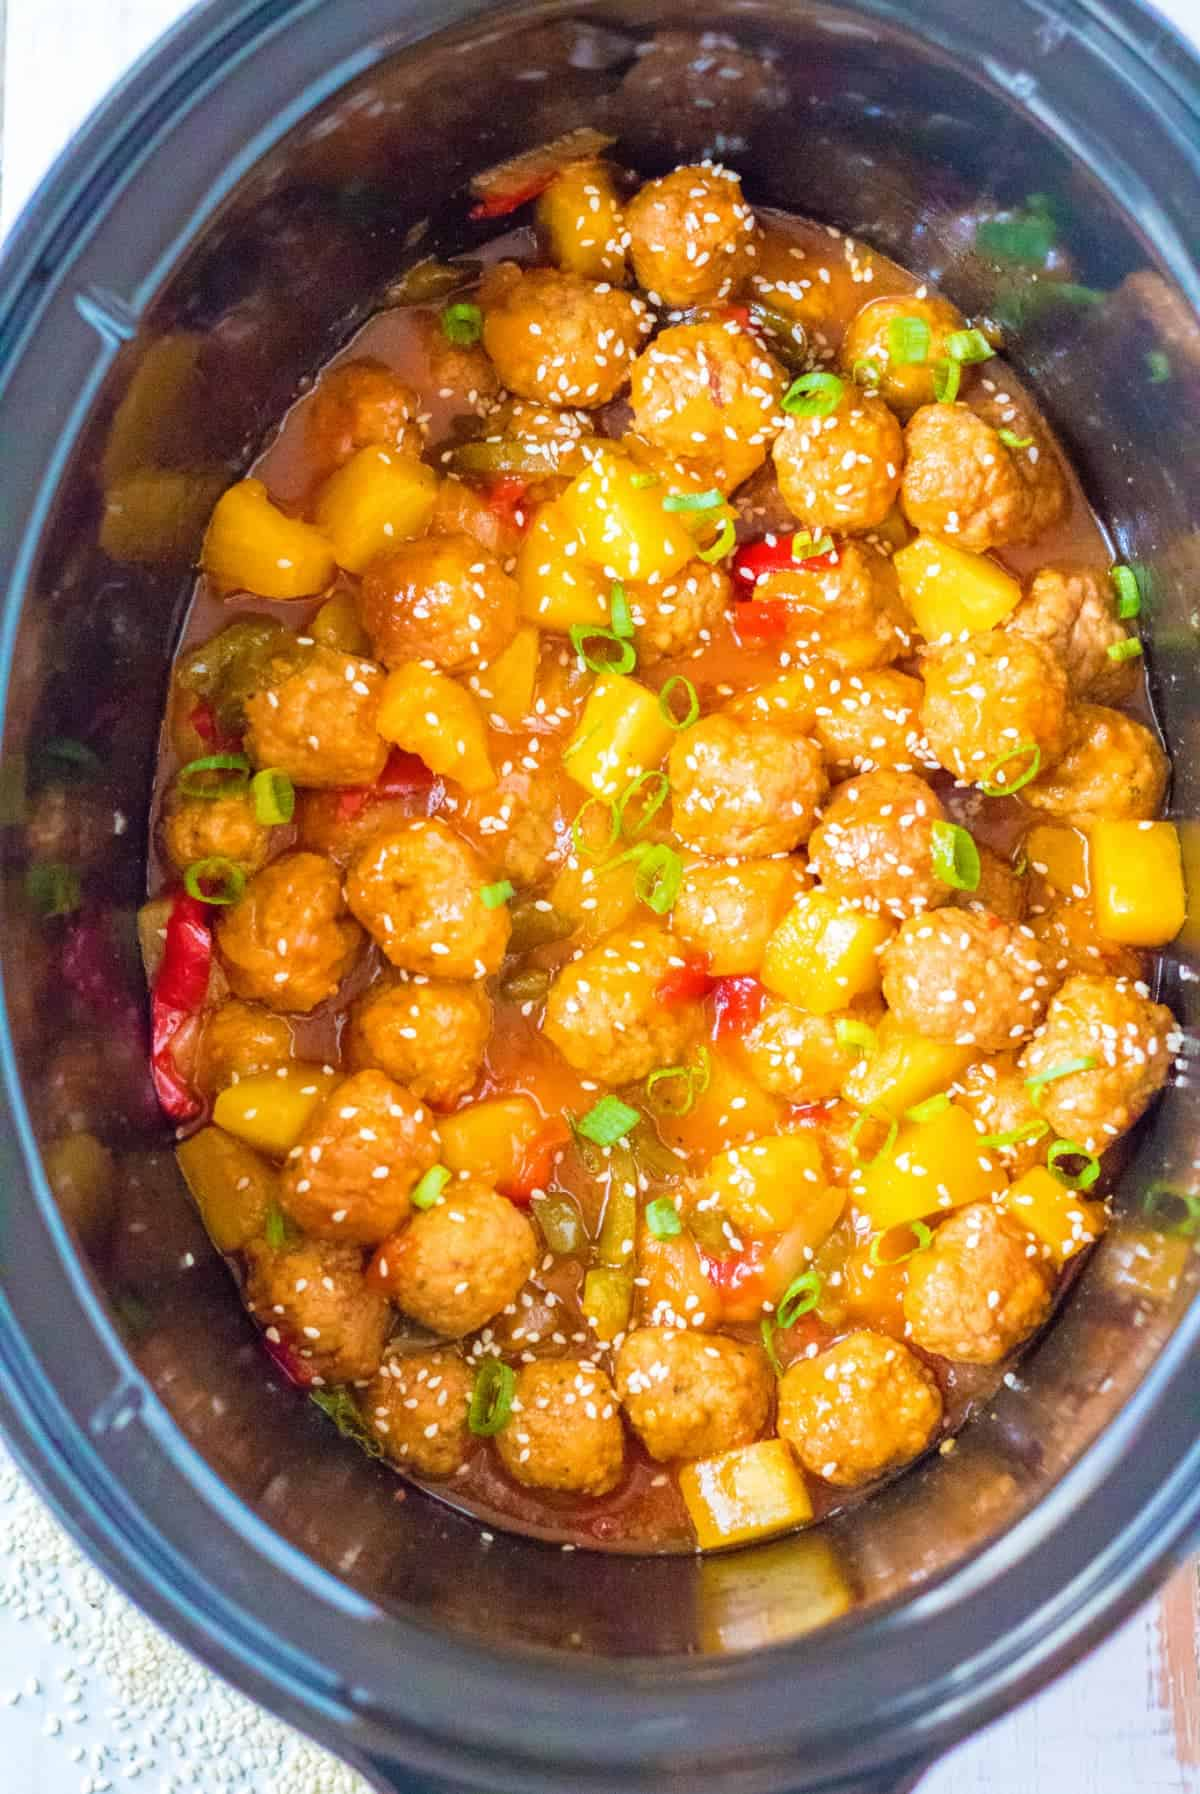 Sweet and sour meatballs that has finished cooking in the slow cooker.